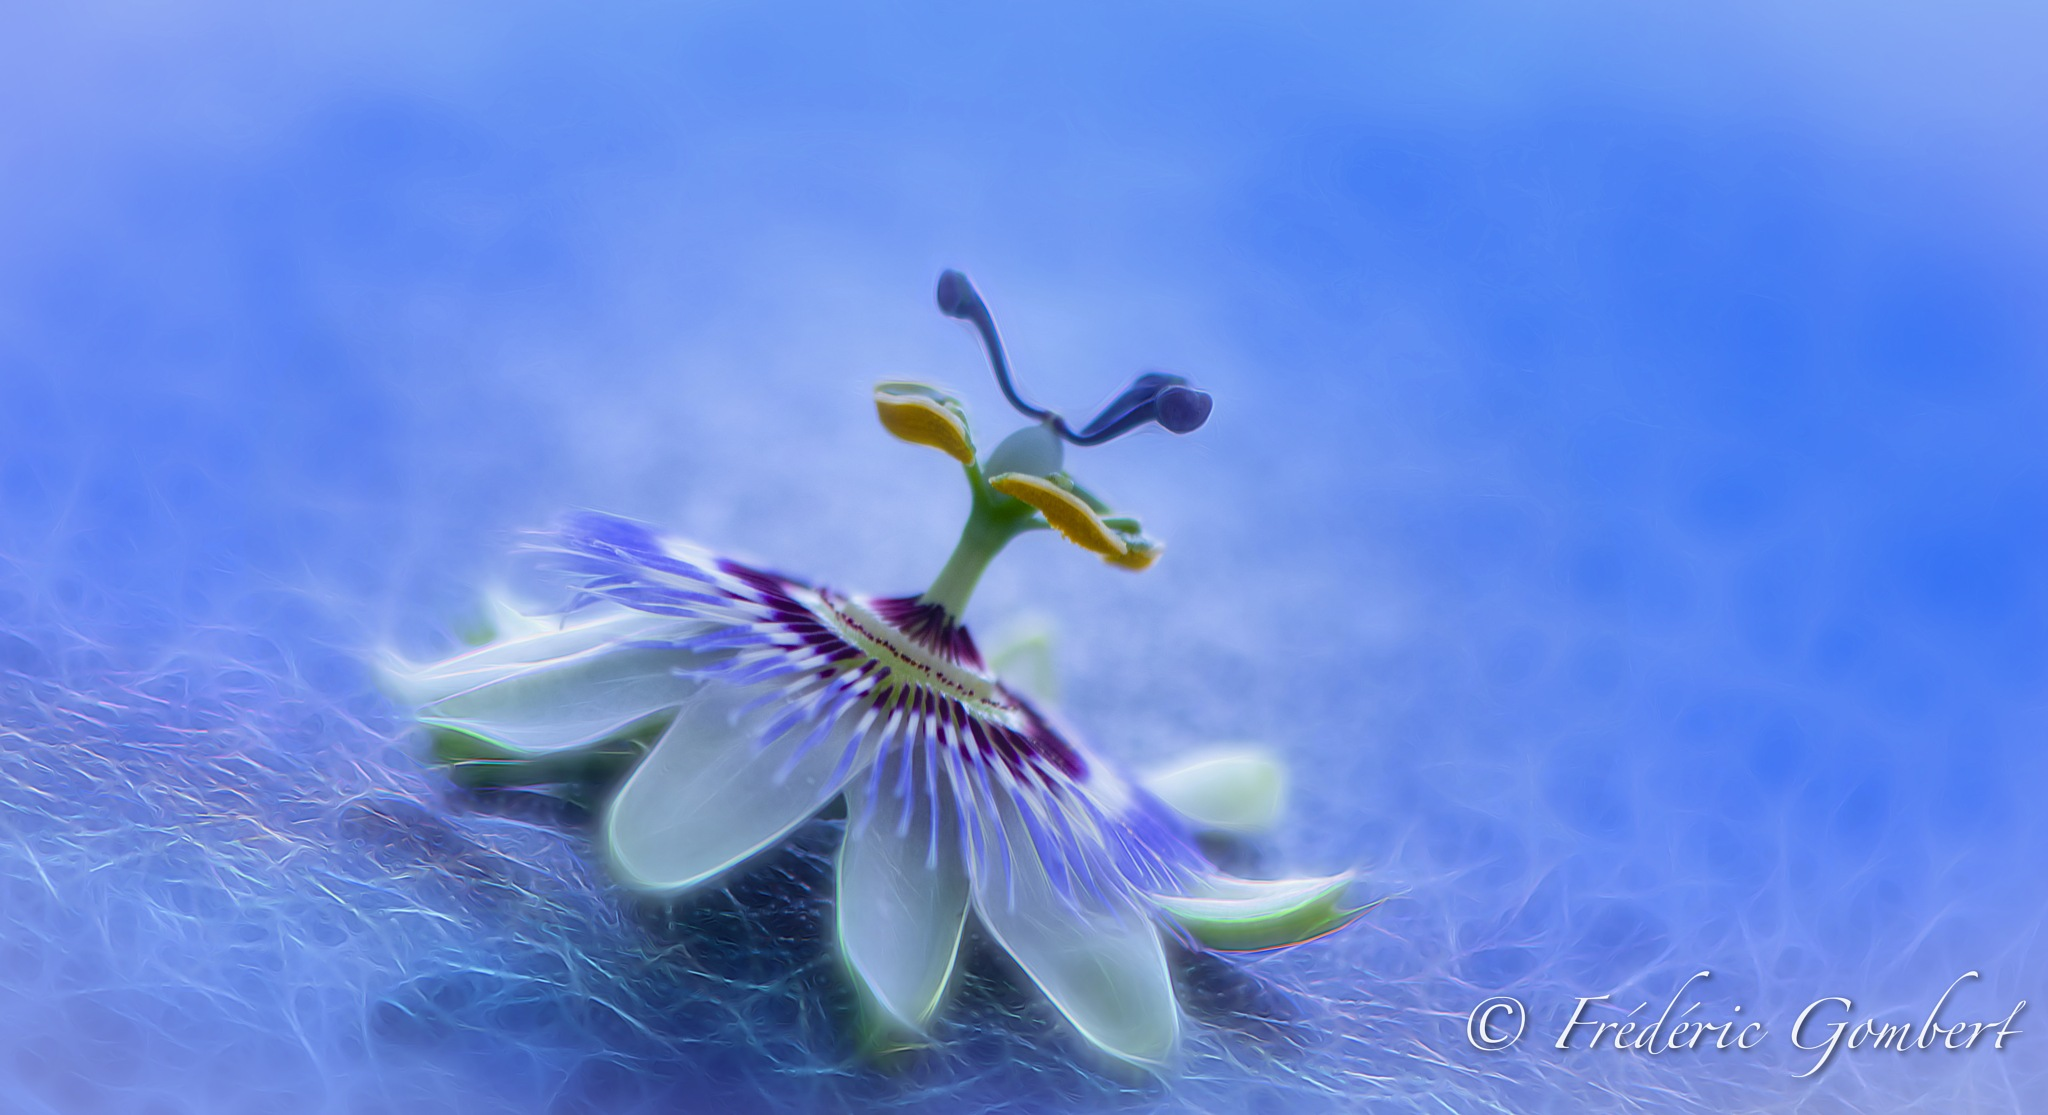 Bottom Up by Frederic Gombert